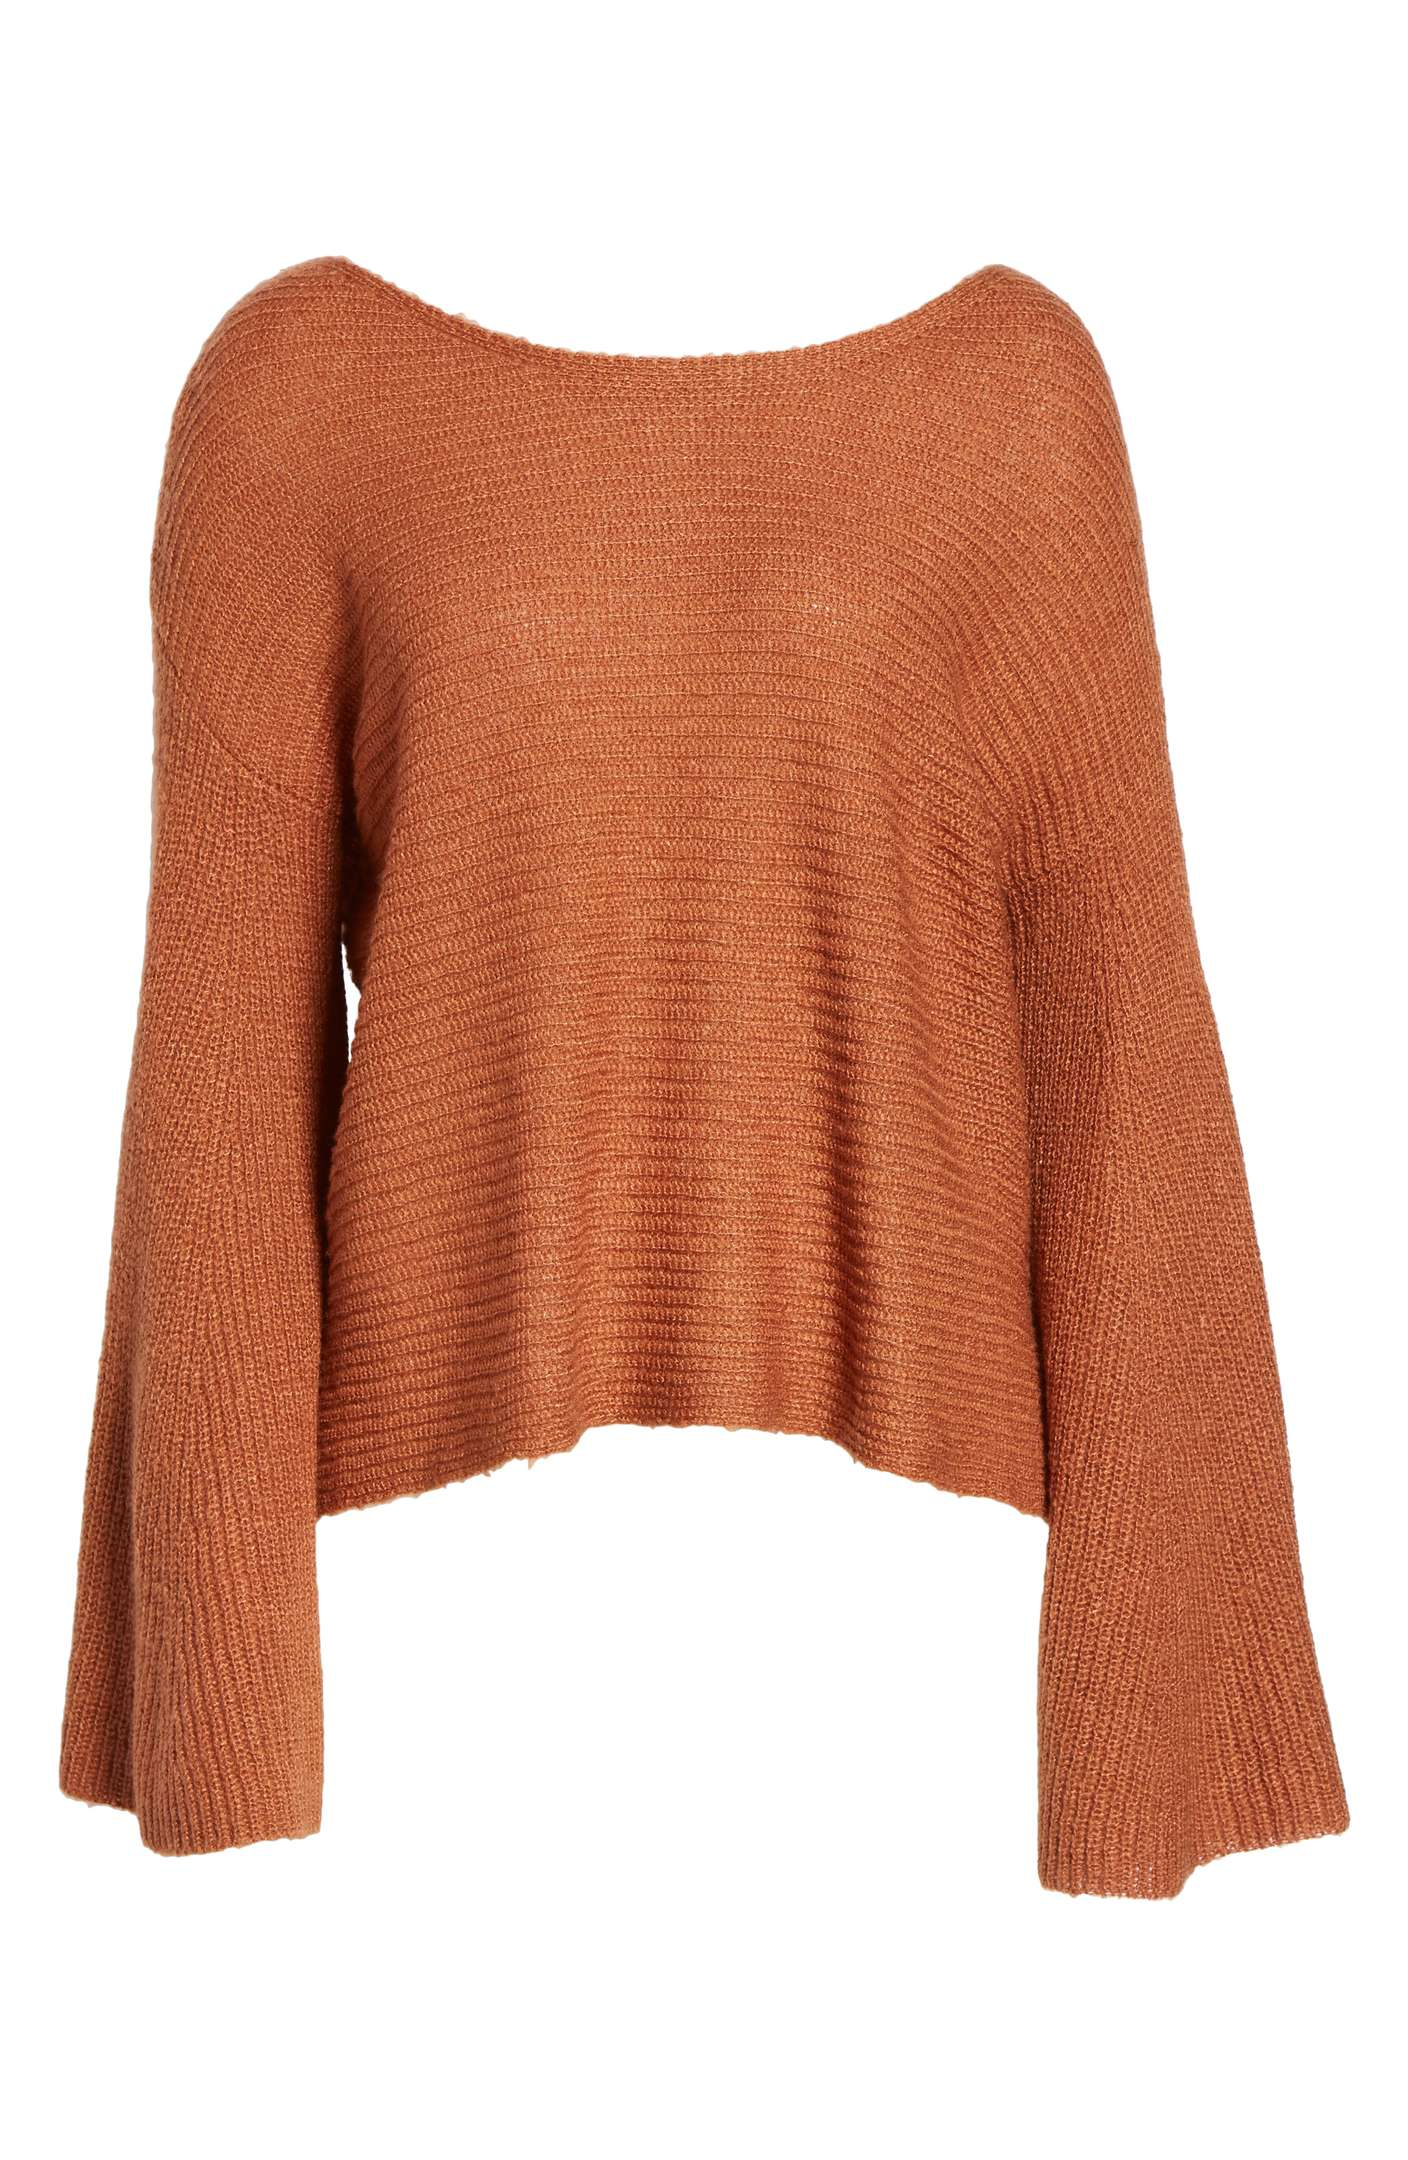 The sweater of the season - Everyone has been crushing on this season's darling, the bell sleeved terra-cotta sweater! It's universally flattering, and super budget-friendly! STEAL FOR $39!